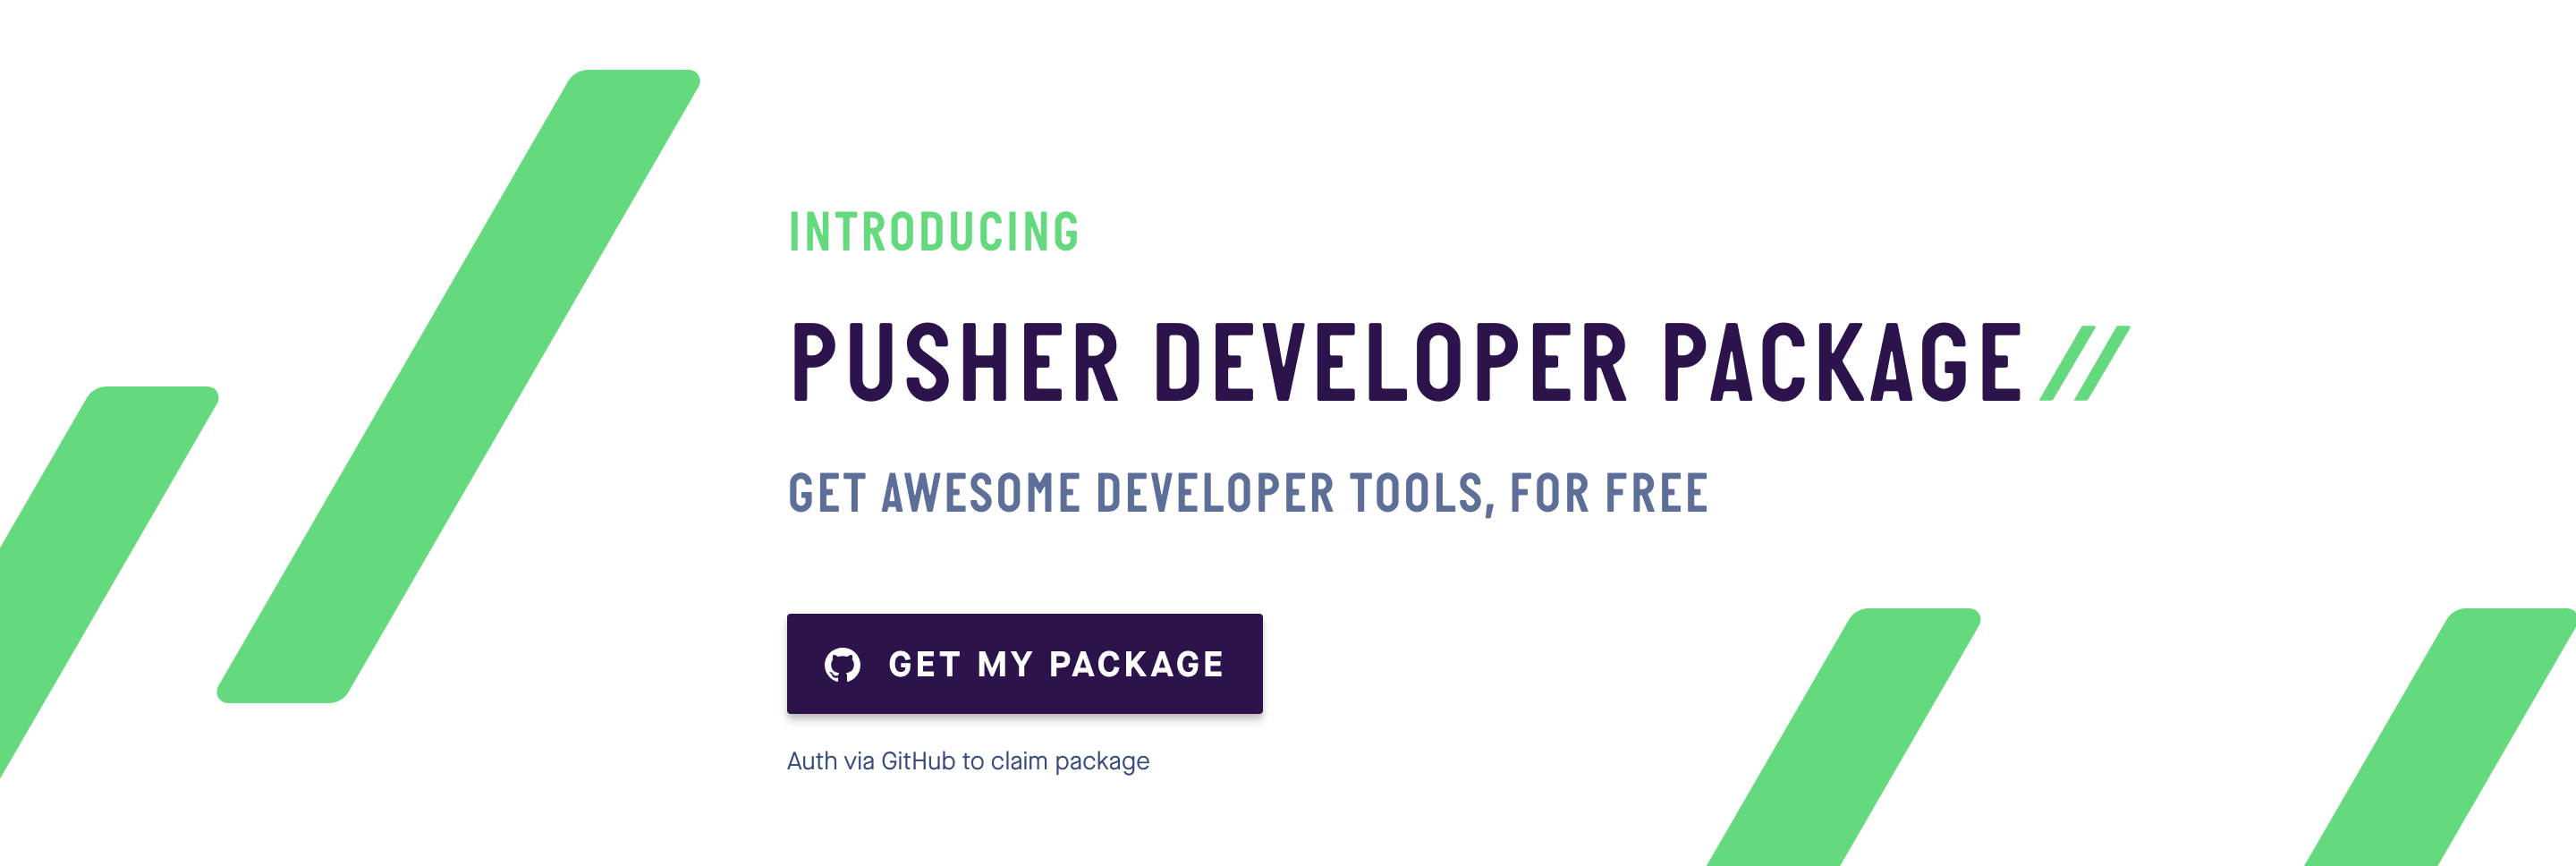 The Pusher Developer Package — free software on us!